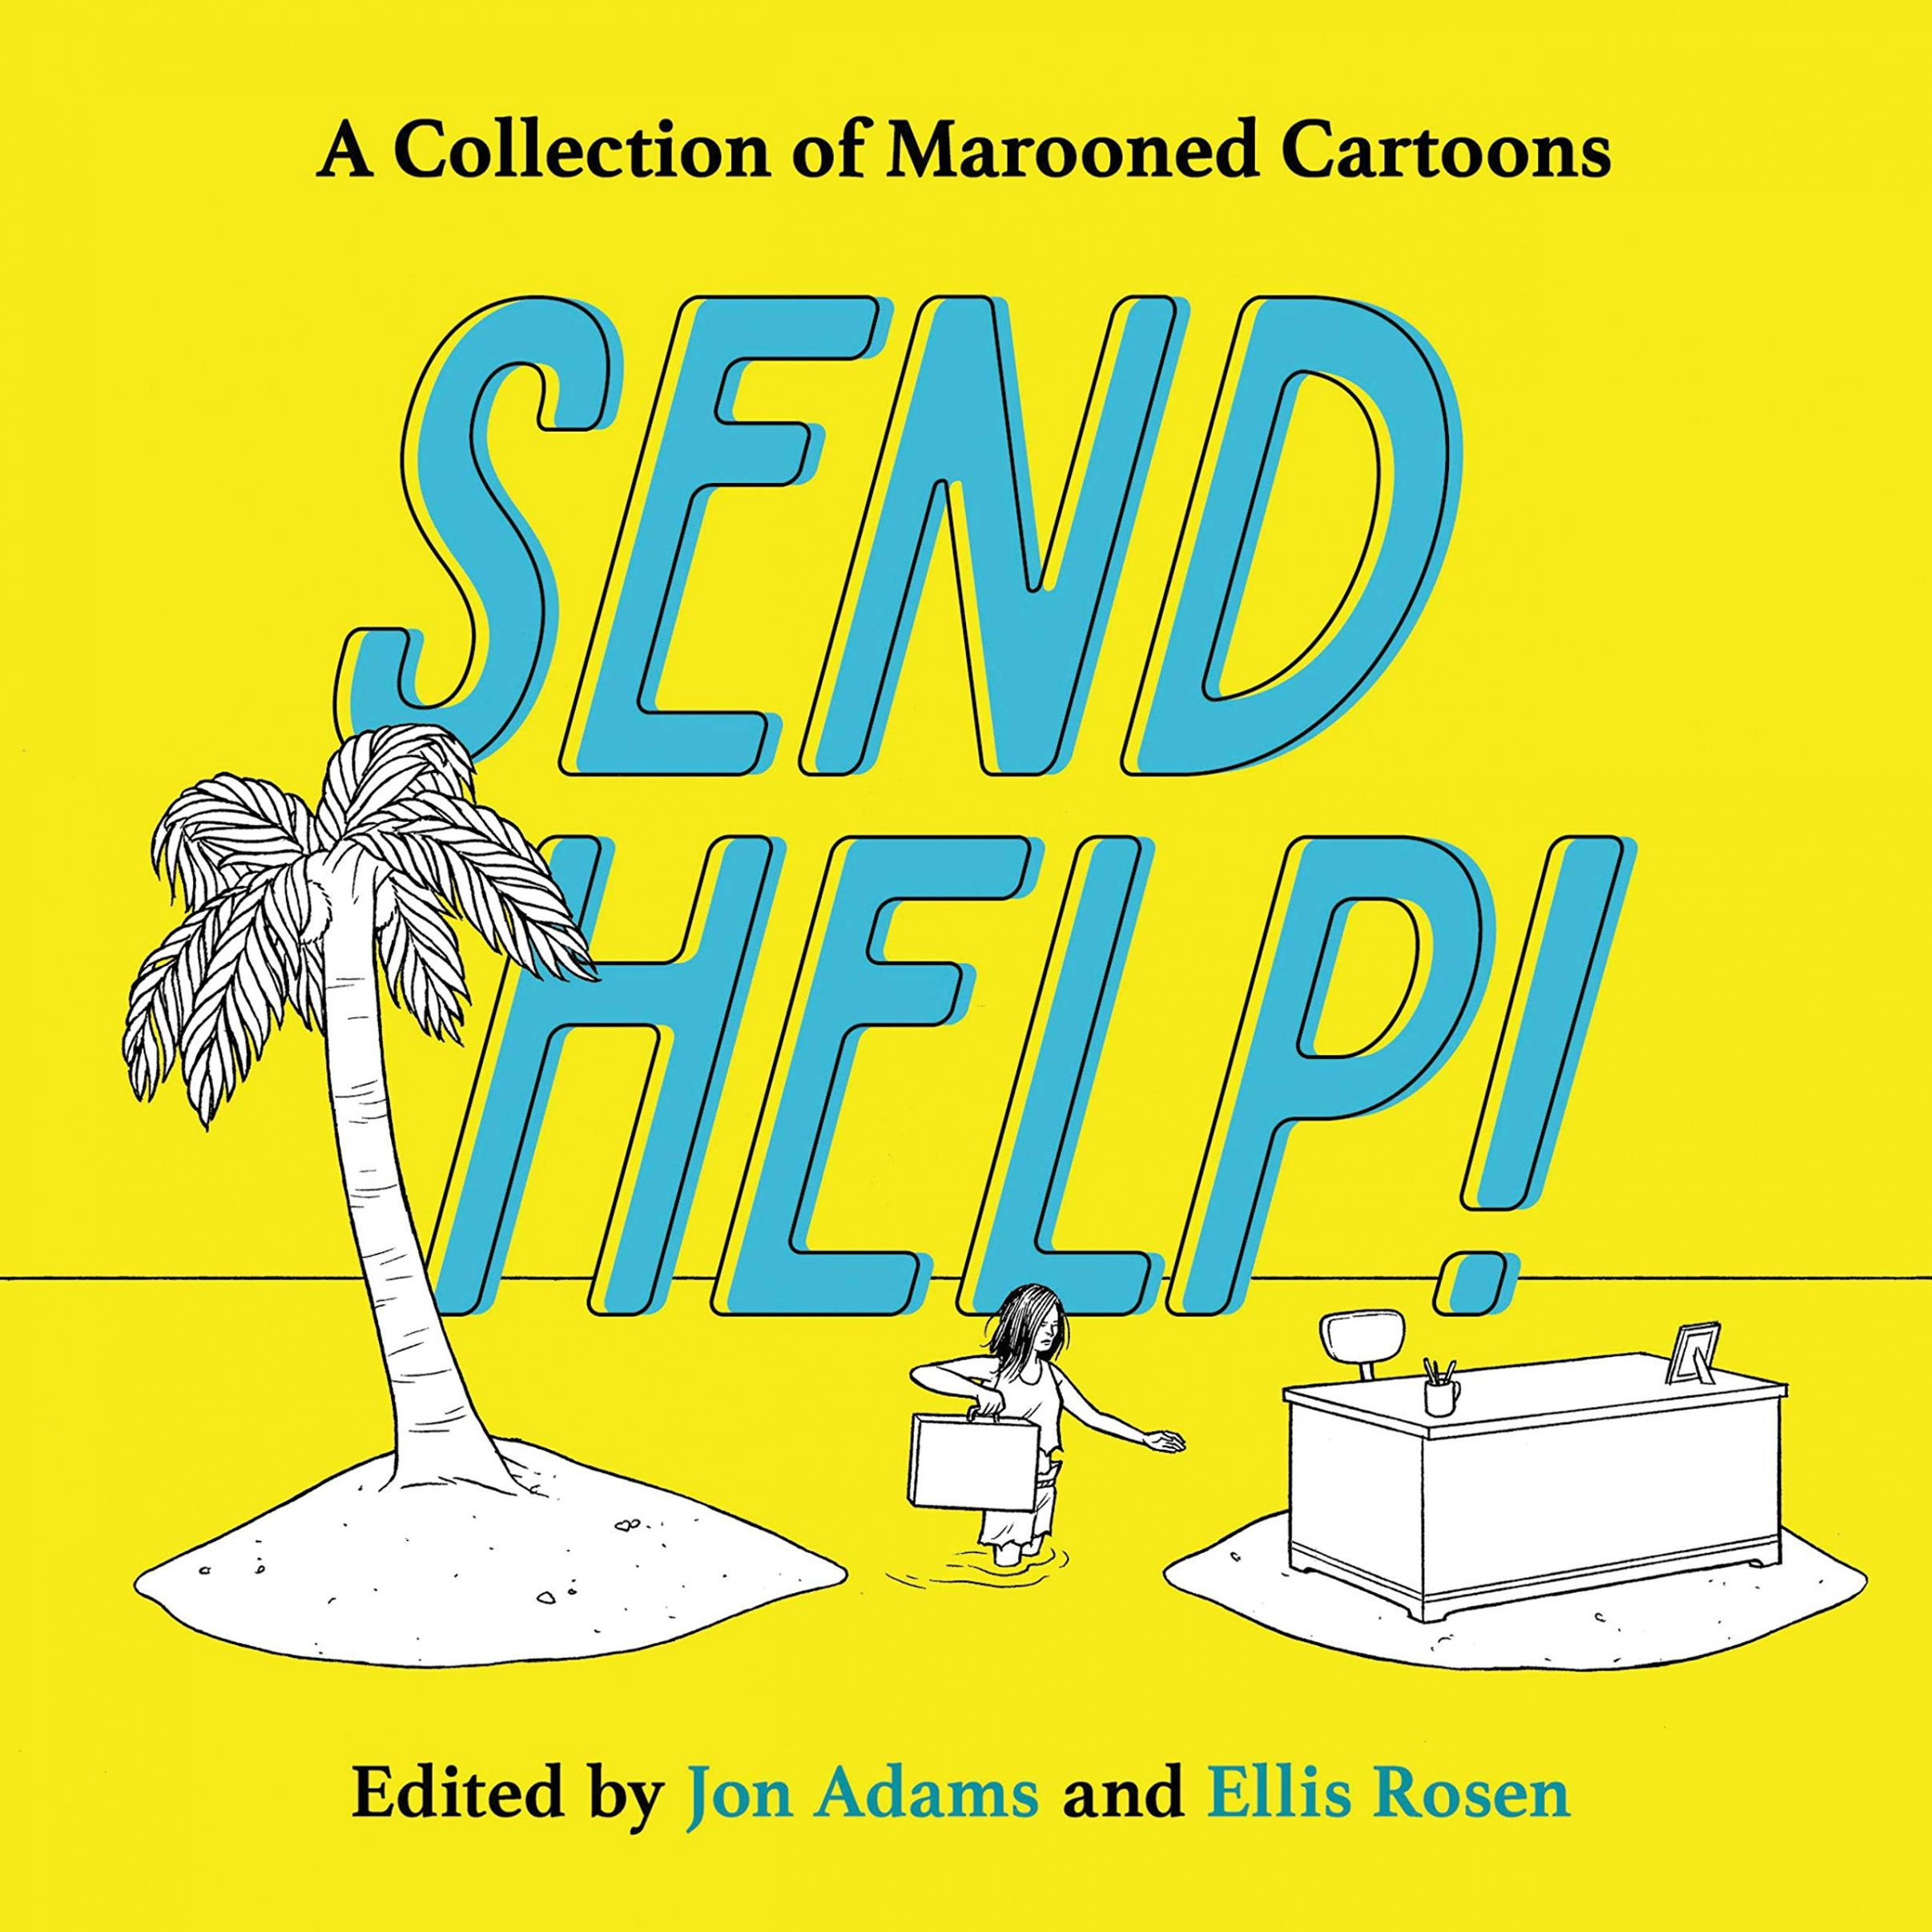 Send Help A collection of marooned cartoons by Jon Adams and Ellis Rosen